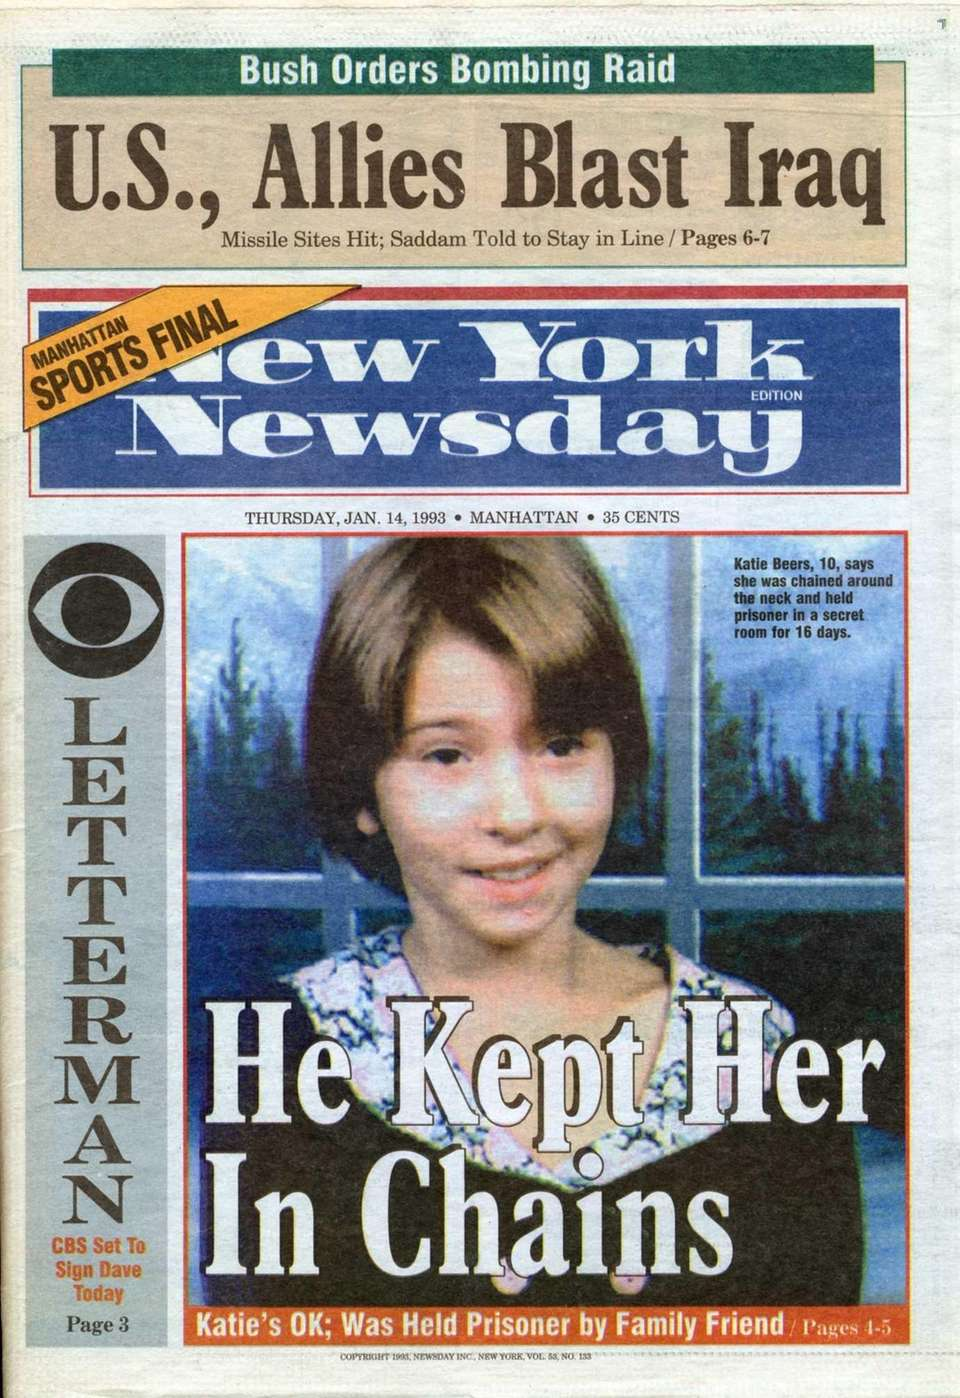 New York Newsday covers Katie Beers: